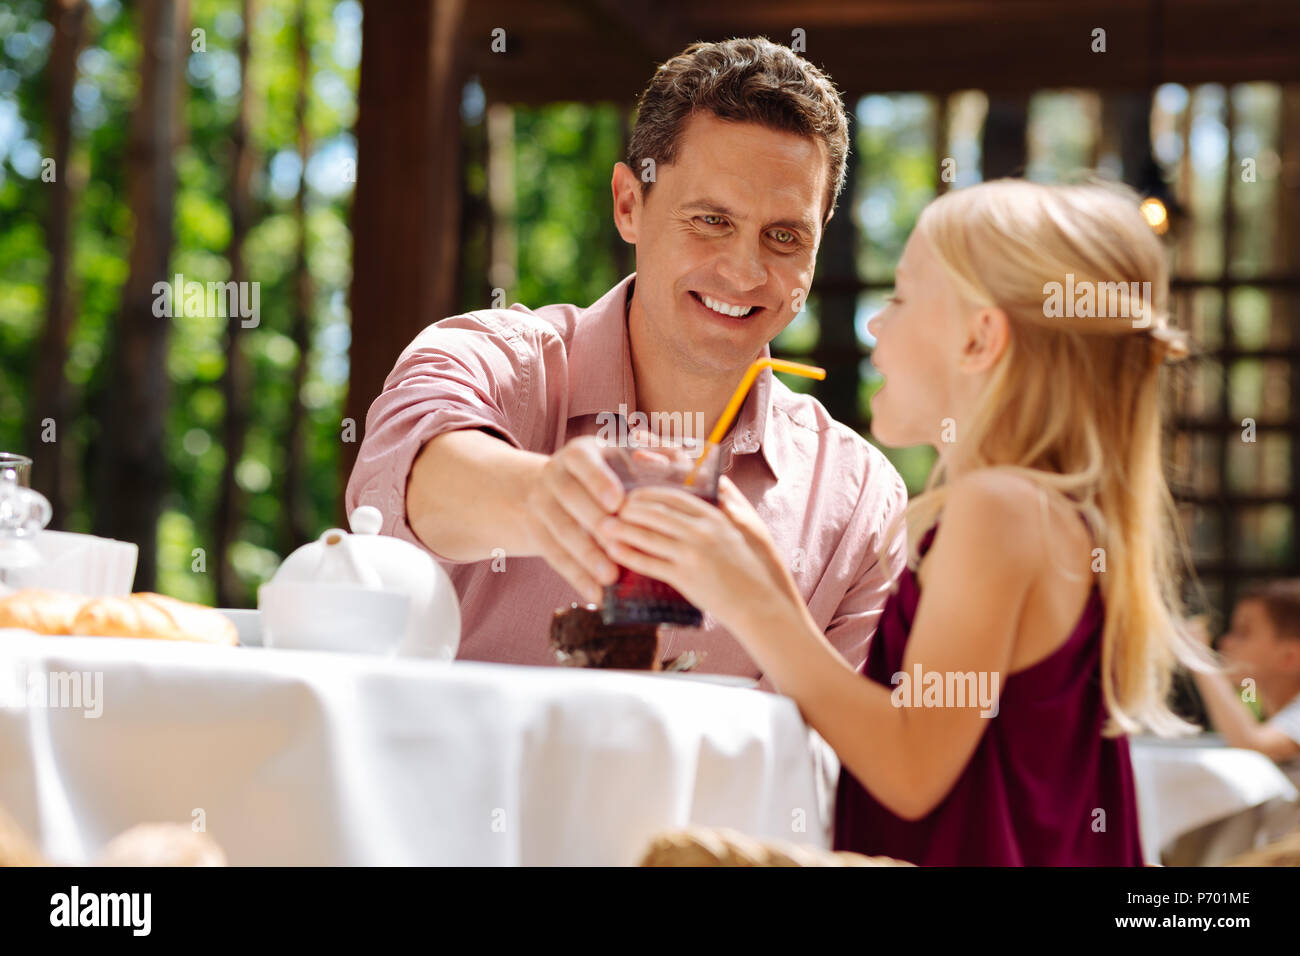 Green-eyed father feeling lovely spending time with daughter